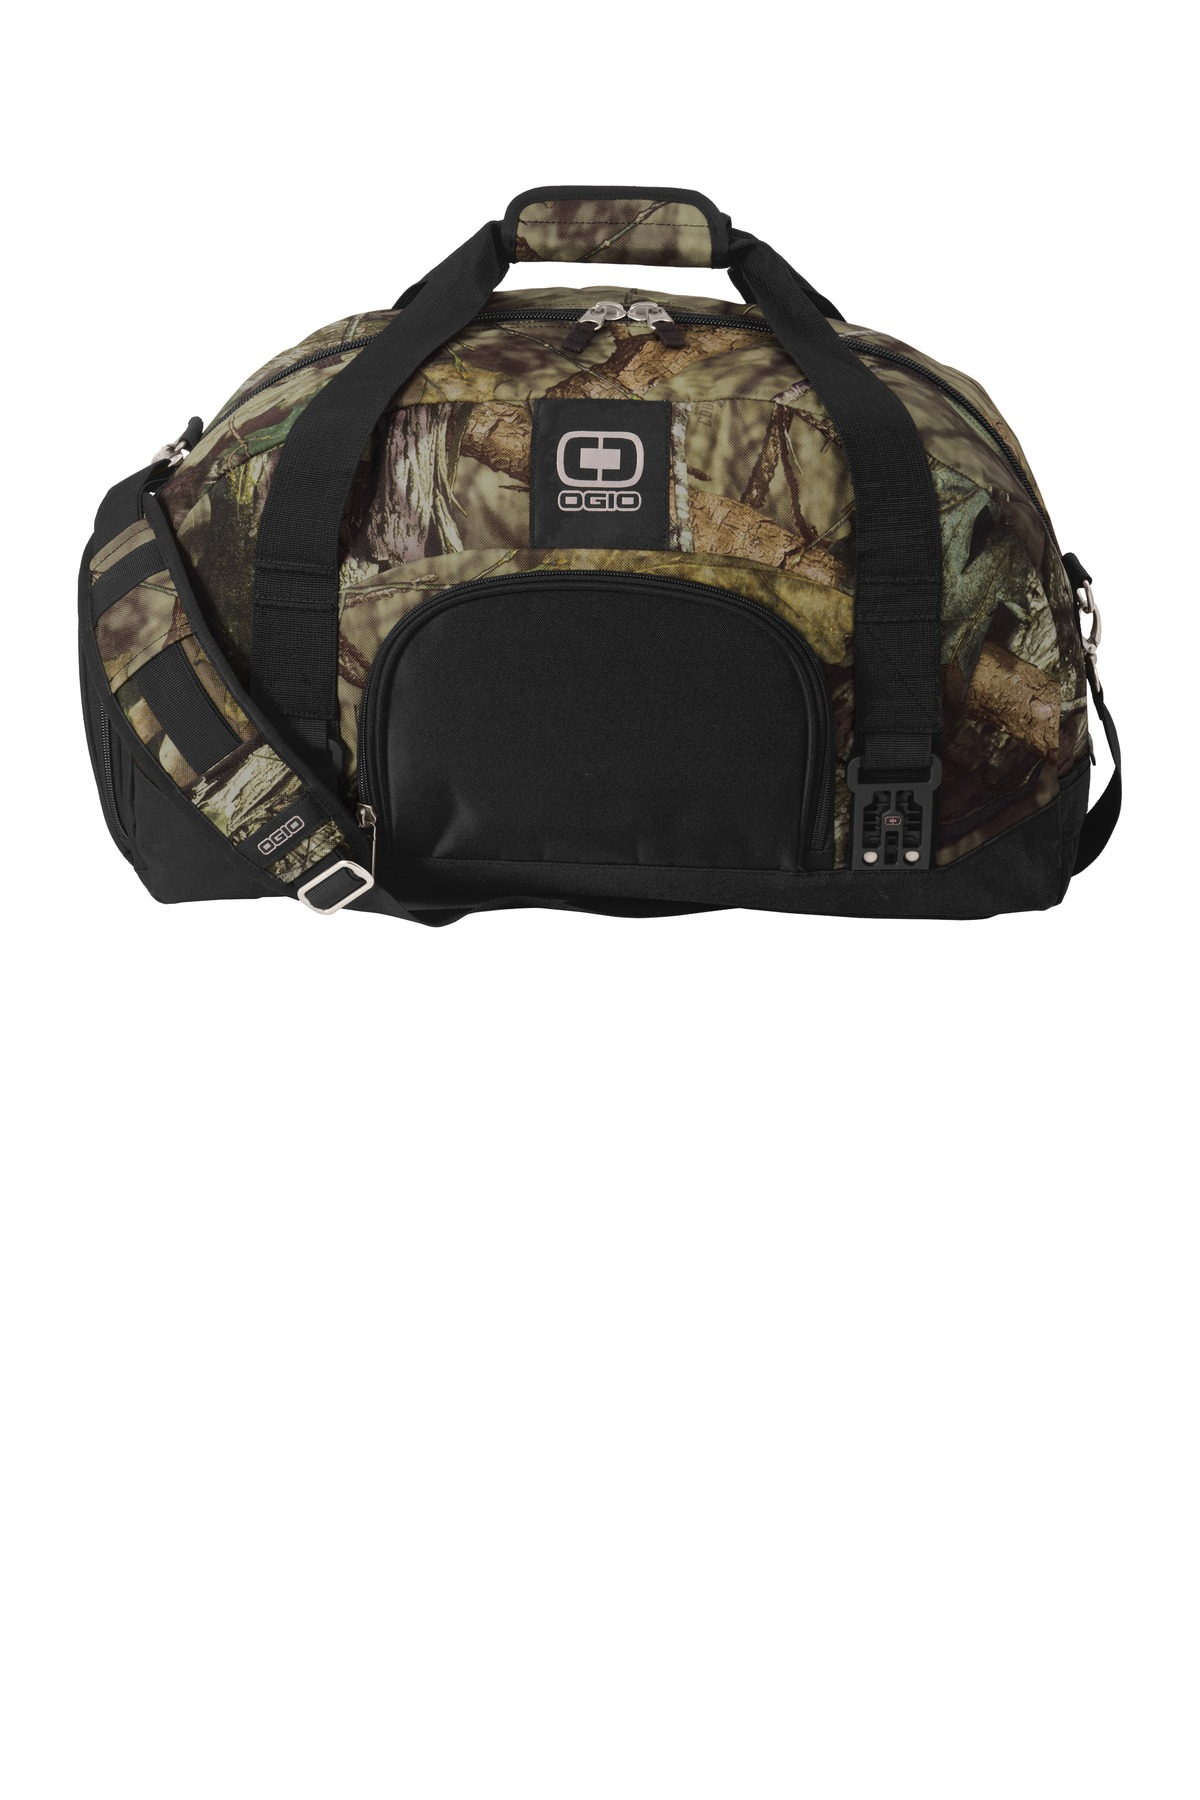 OGIO ®  Camo Big Dome Duffel. 108087C - Mossy Oak Break-Up Country